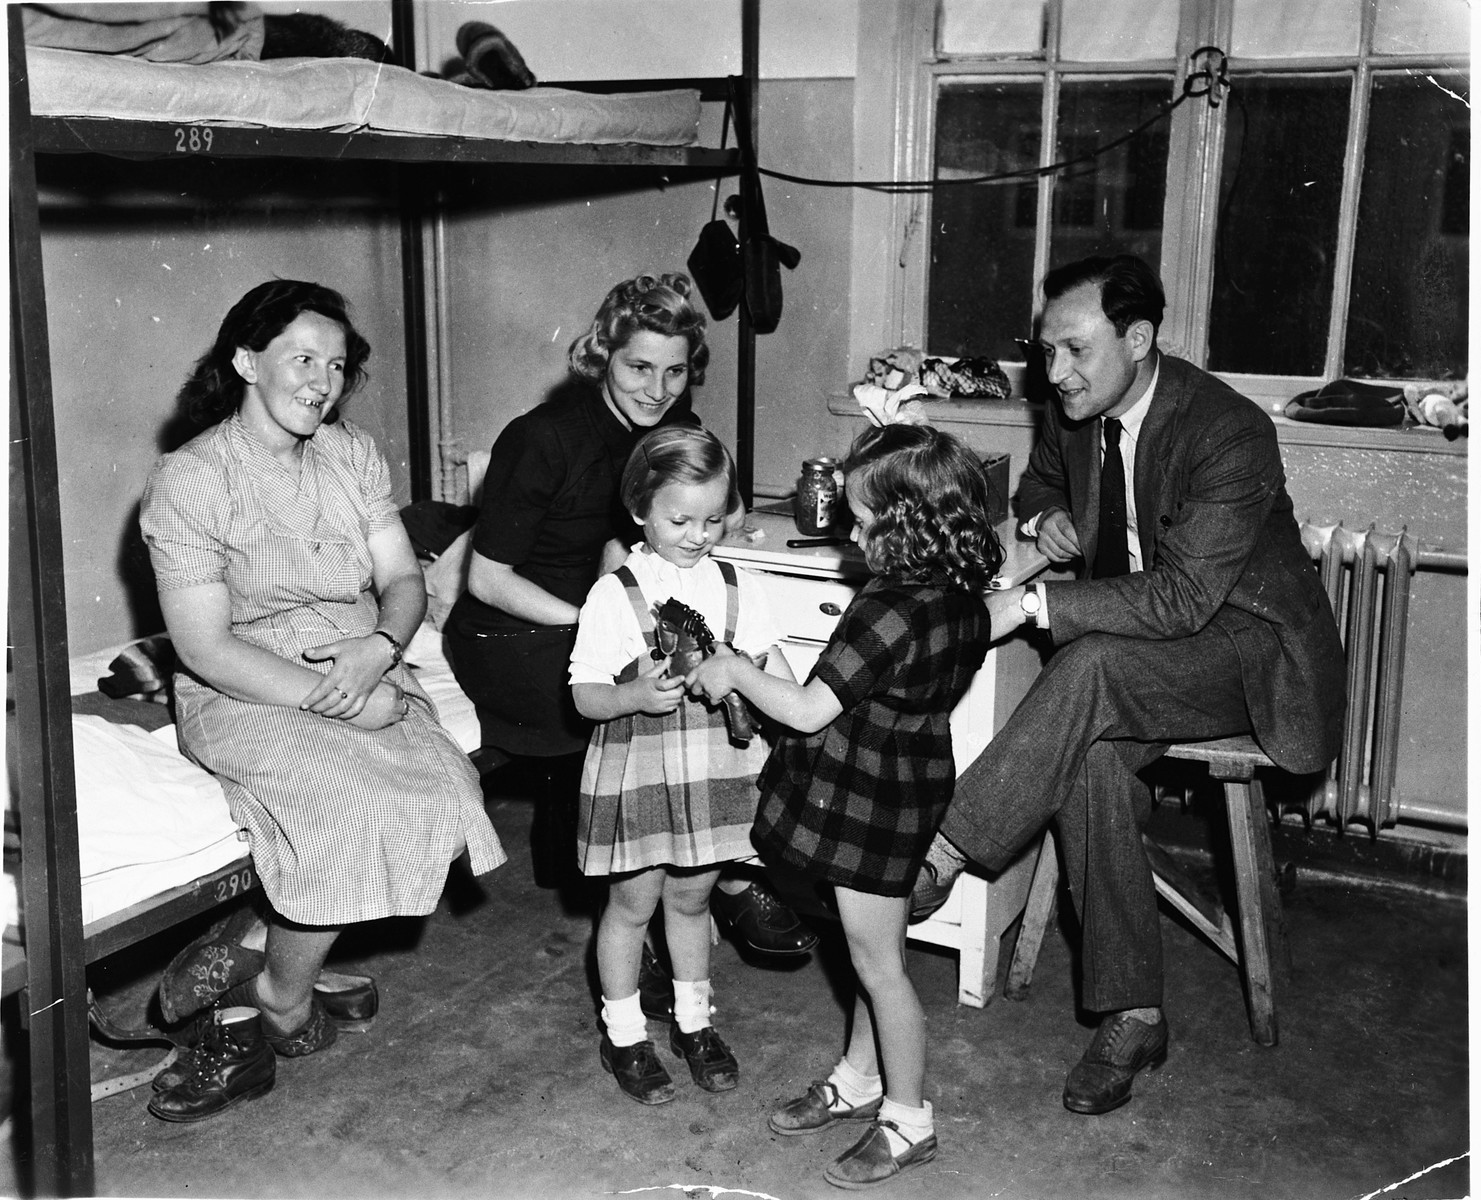 The Starkopf family visits with friends in the Feldafing displaced persons camp.